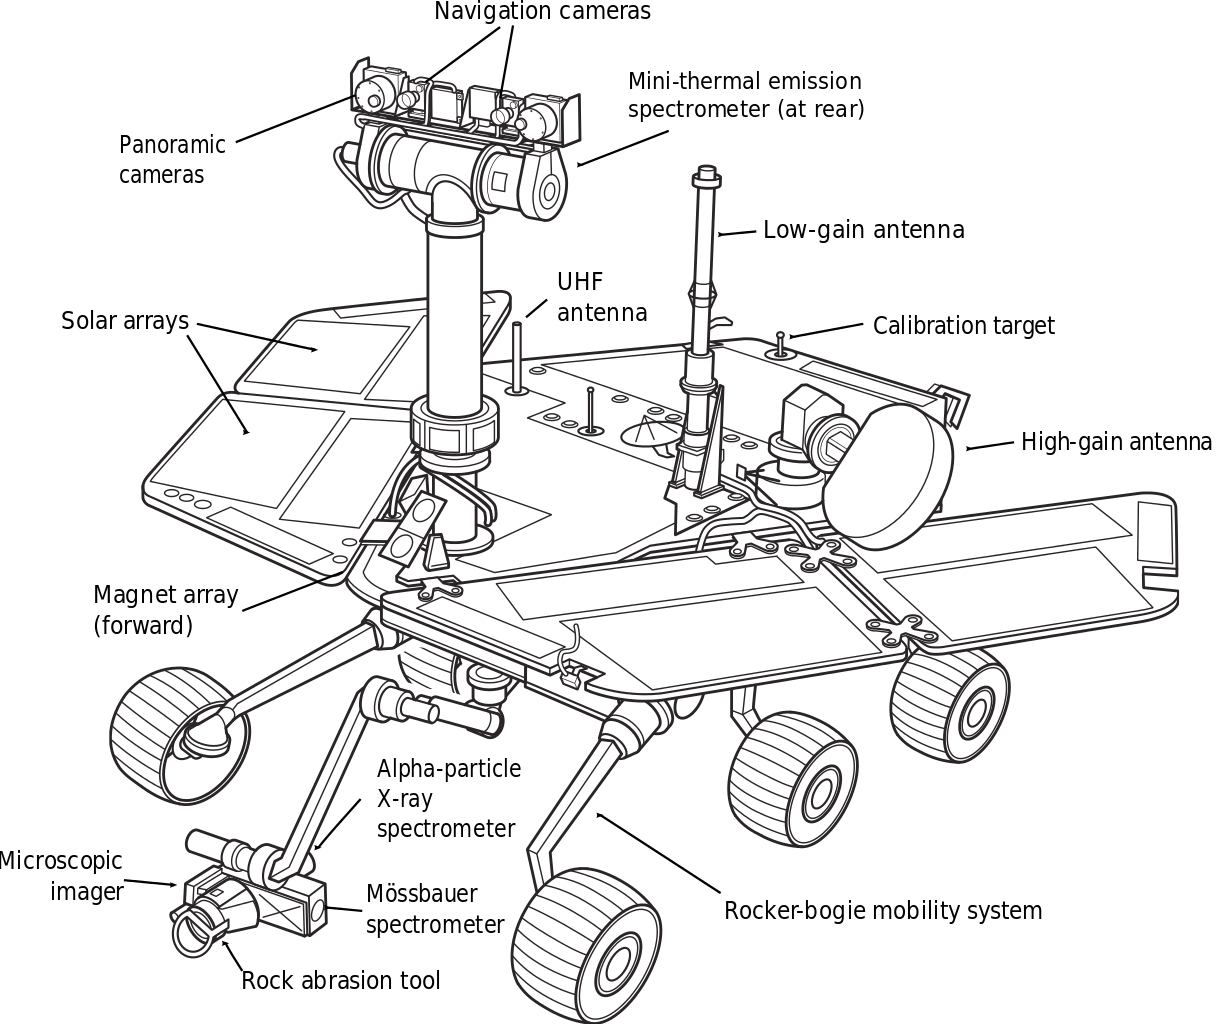 Drawing gears the martian. Mars exploration rover diagram